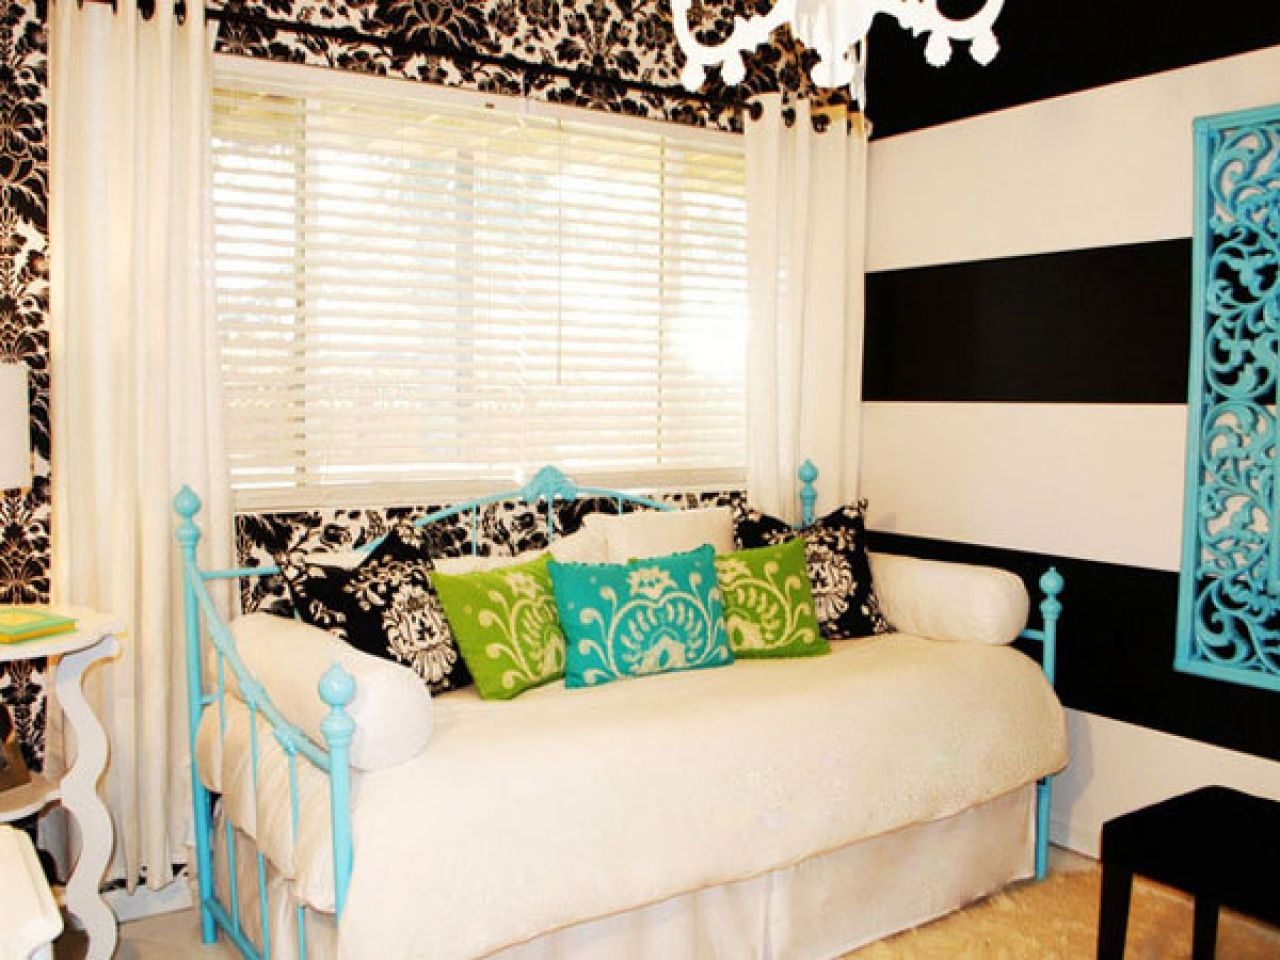 Bedroom paint designs black and white - Cool And Feminine Teen Girls Room Ideas Charming Black White Stripe And Black Floral Wall